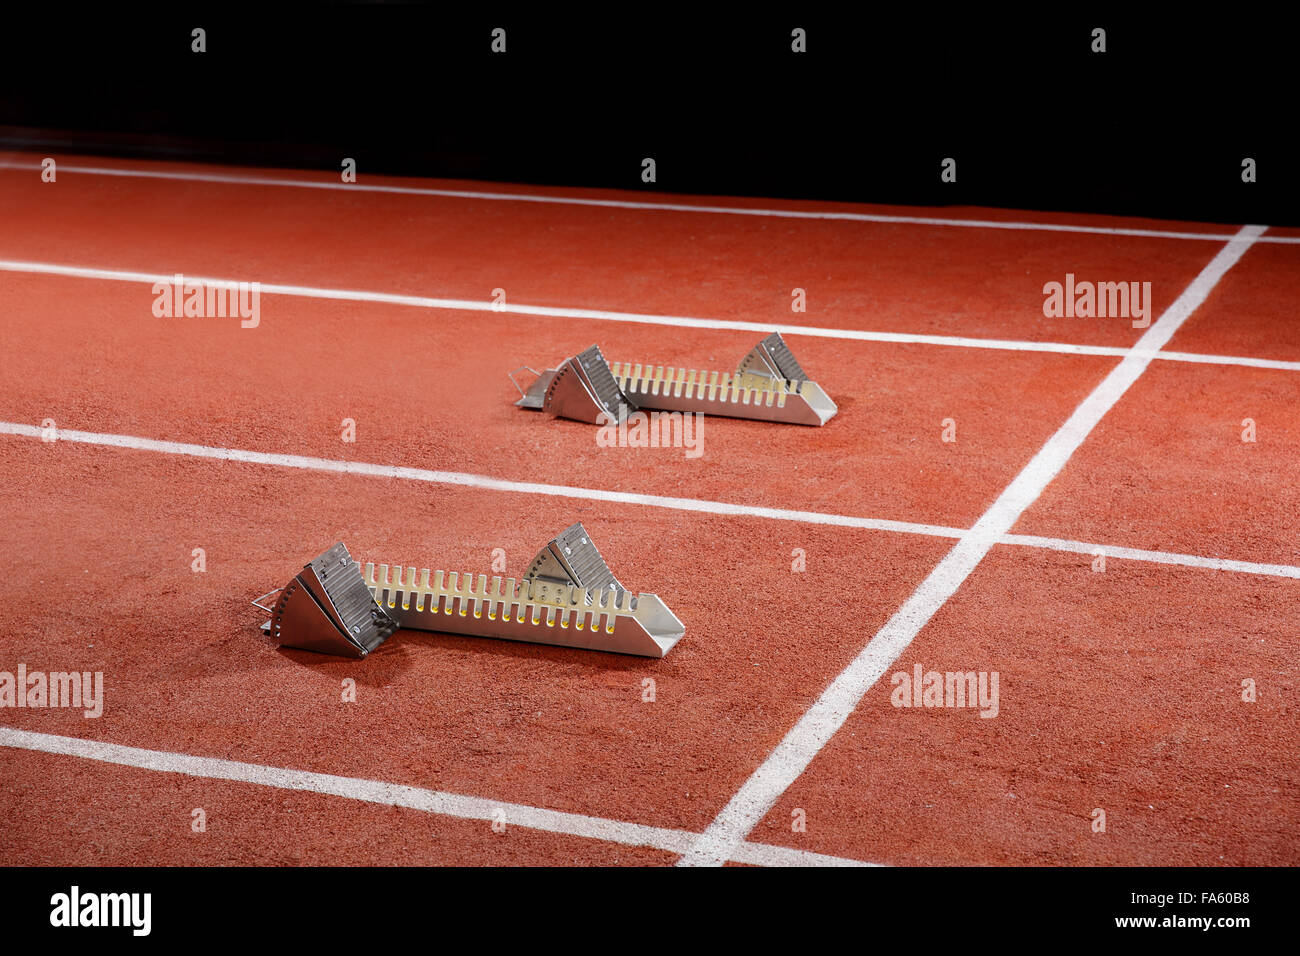 Track And Field Starting Frame Stock Photo 92330428 Alamy